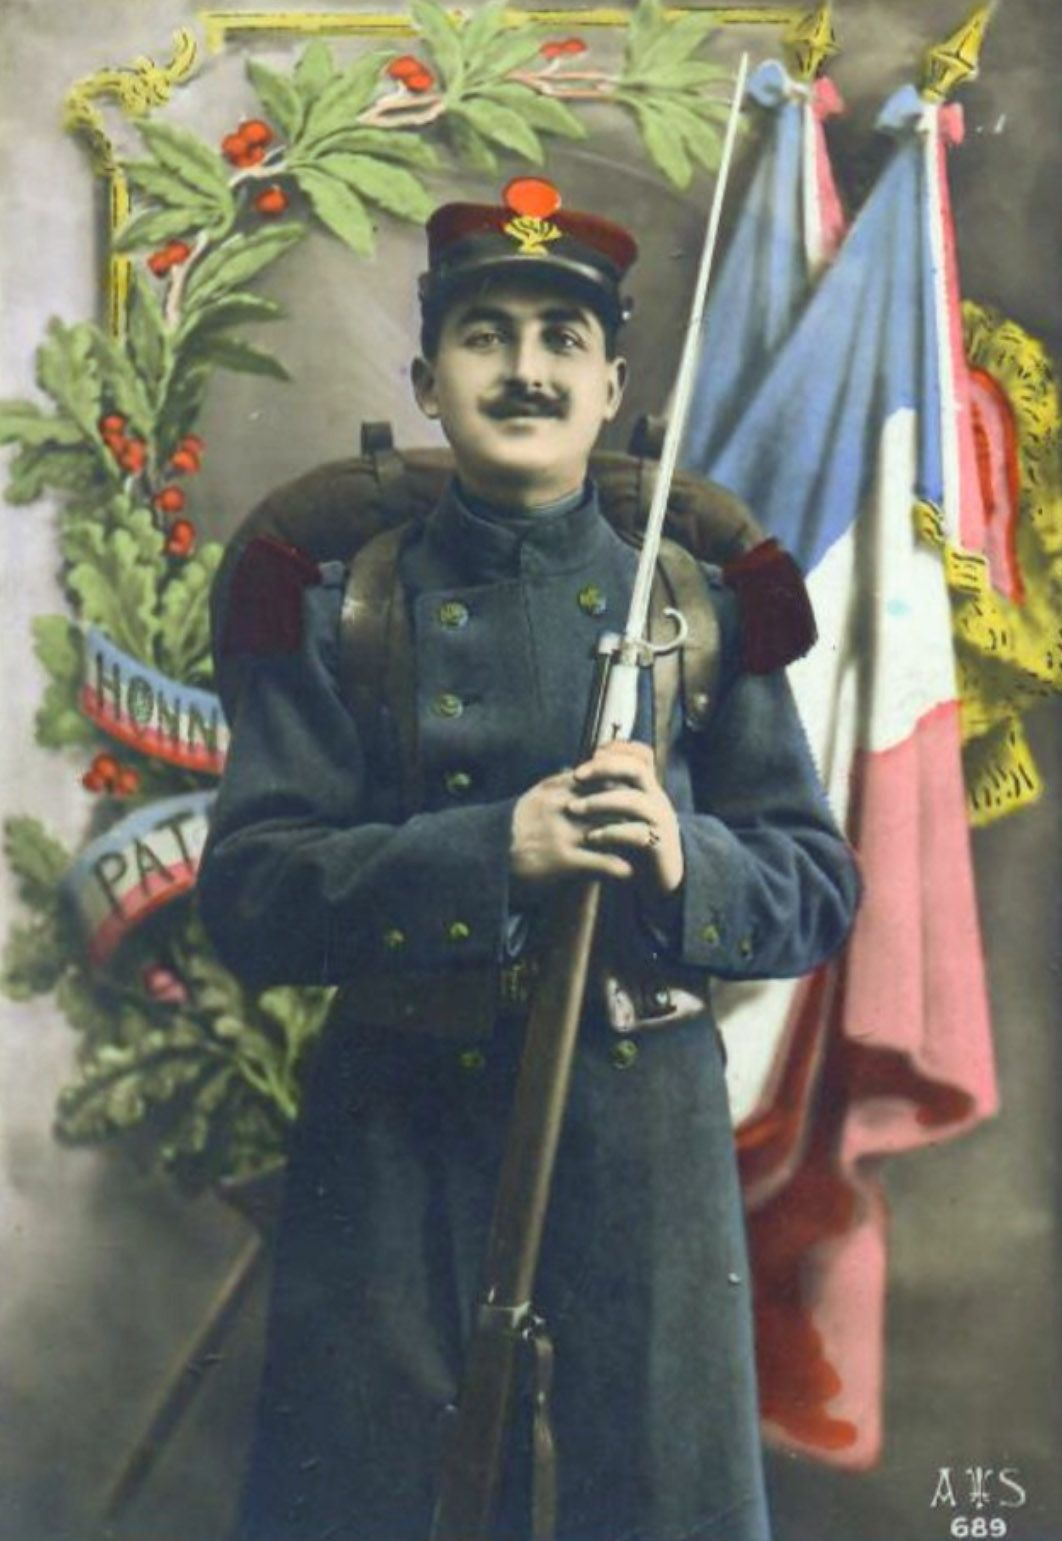 French with Lebel, patriotic